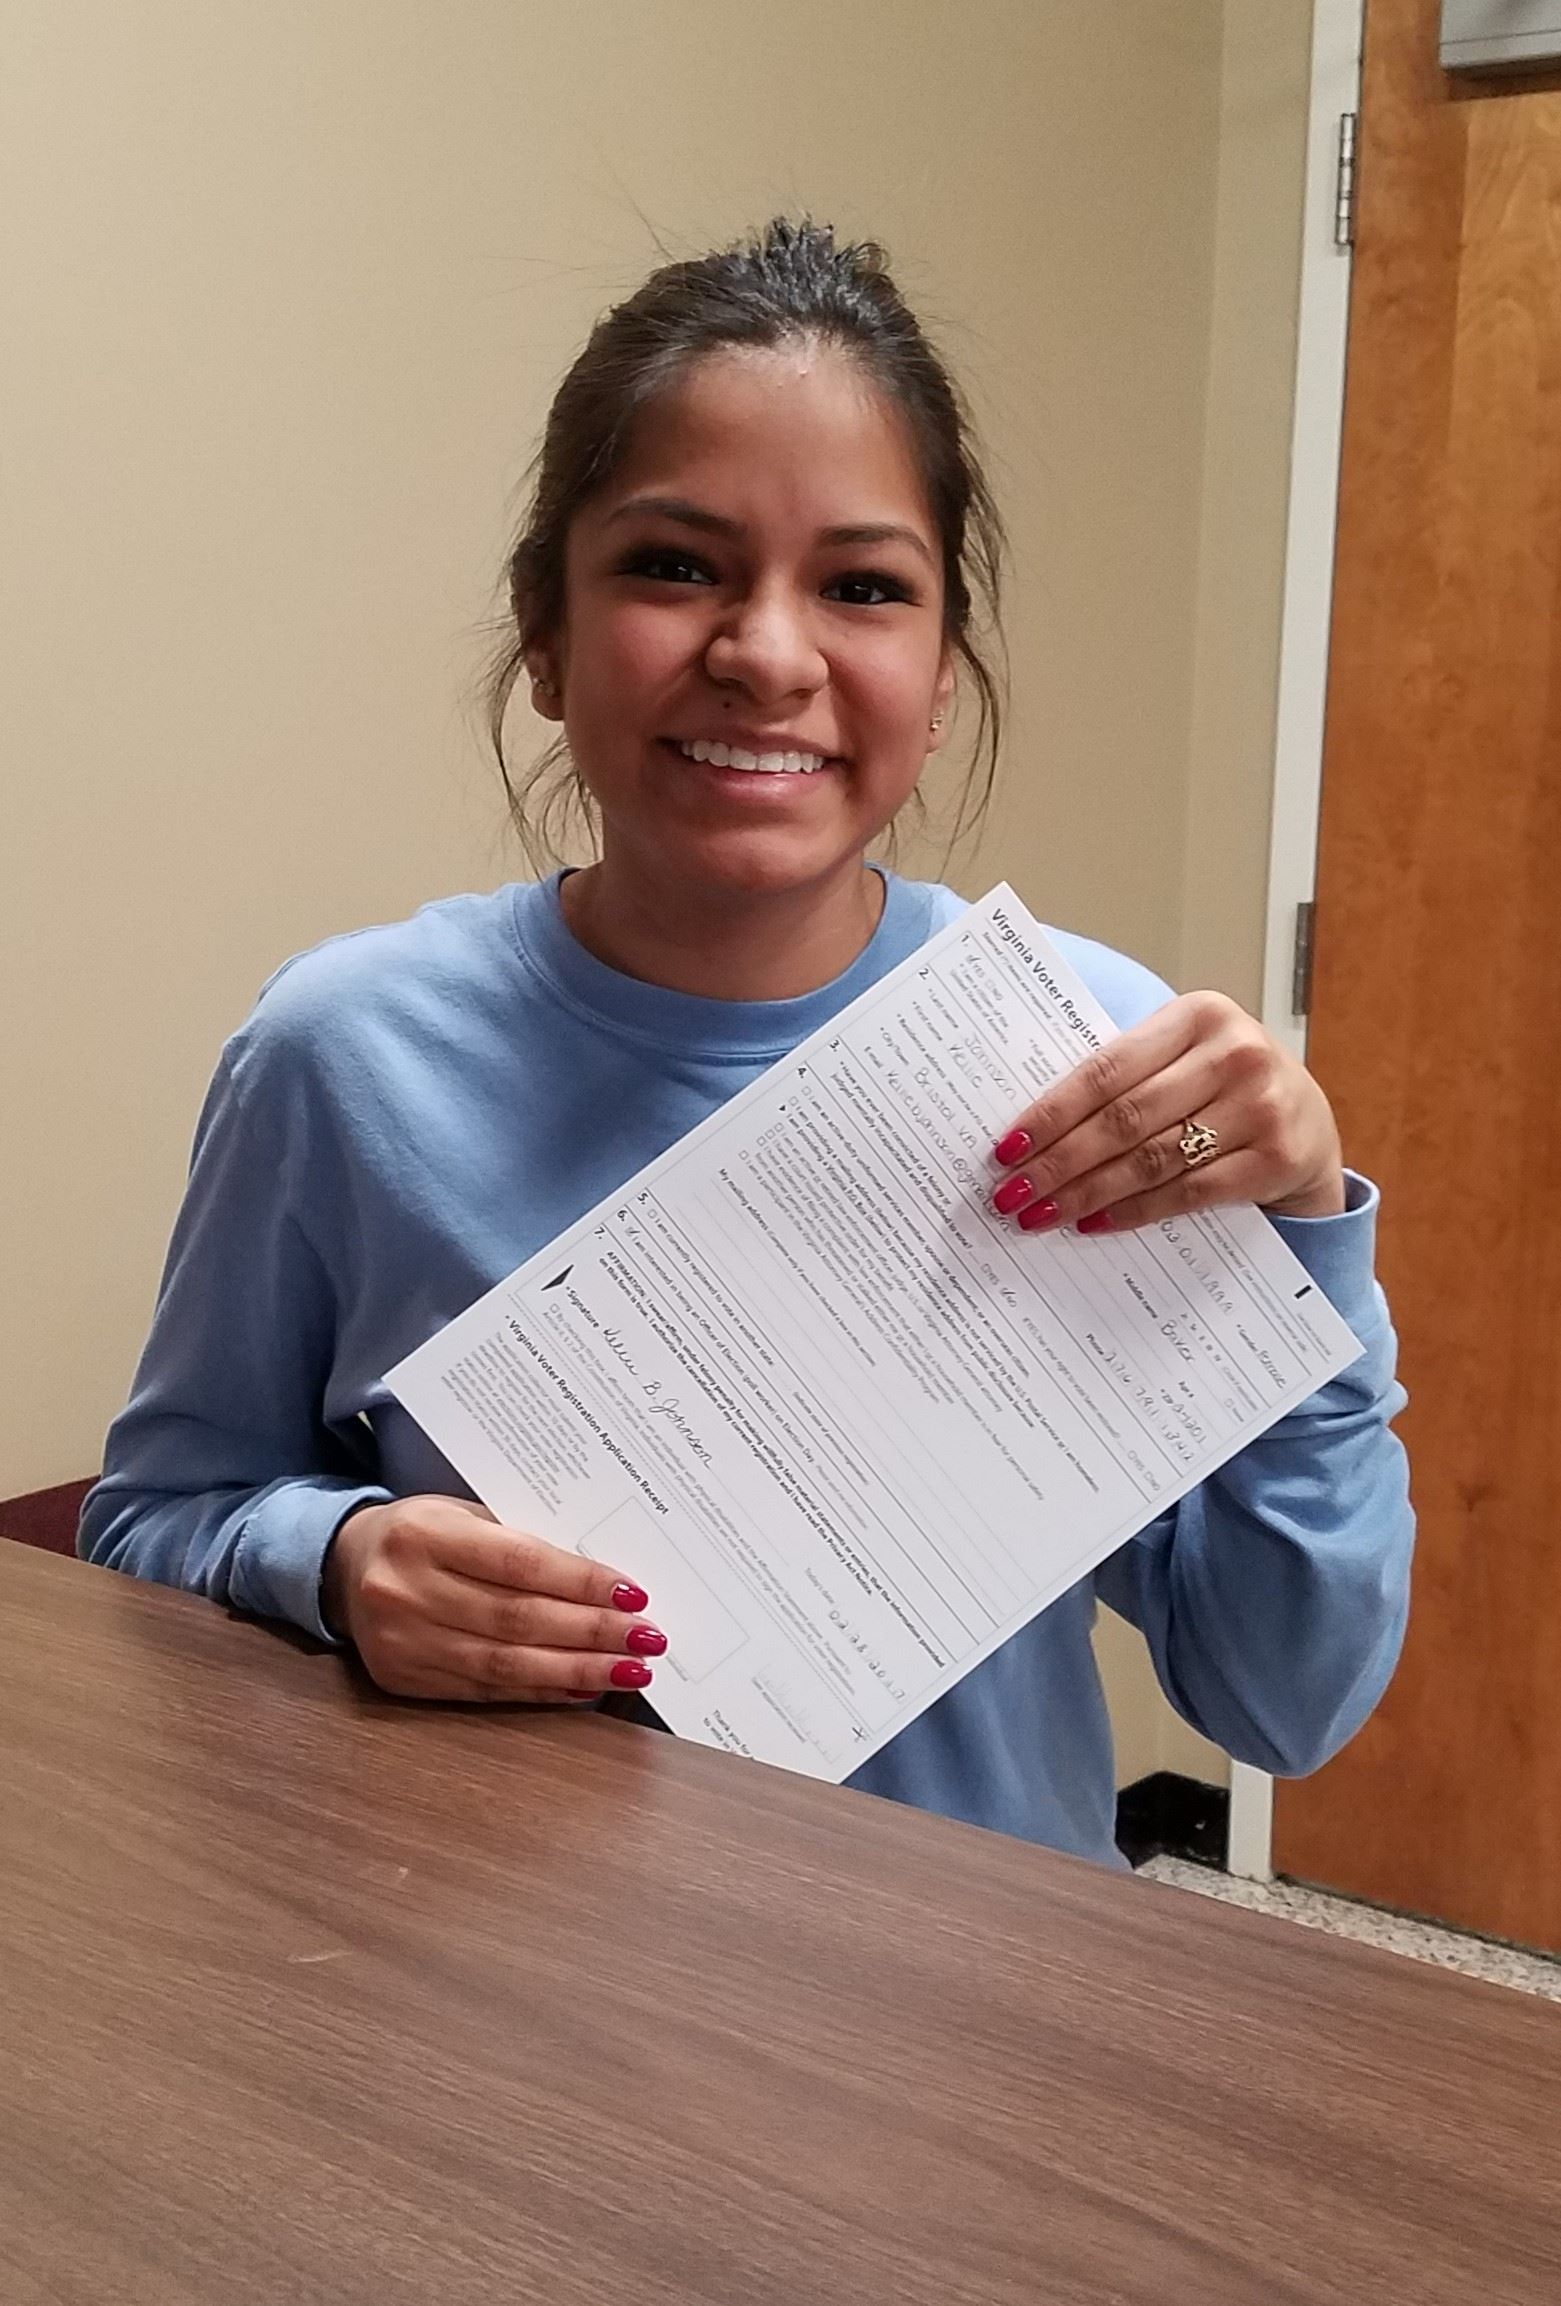 On her 18th Birthday, Kellie Johnson registered to vote!